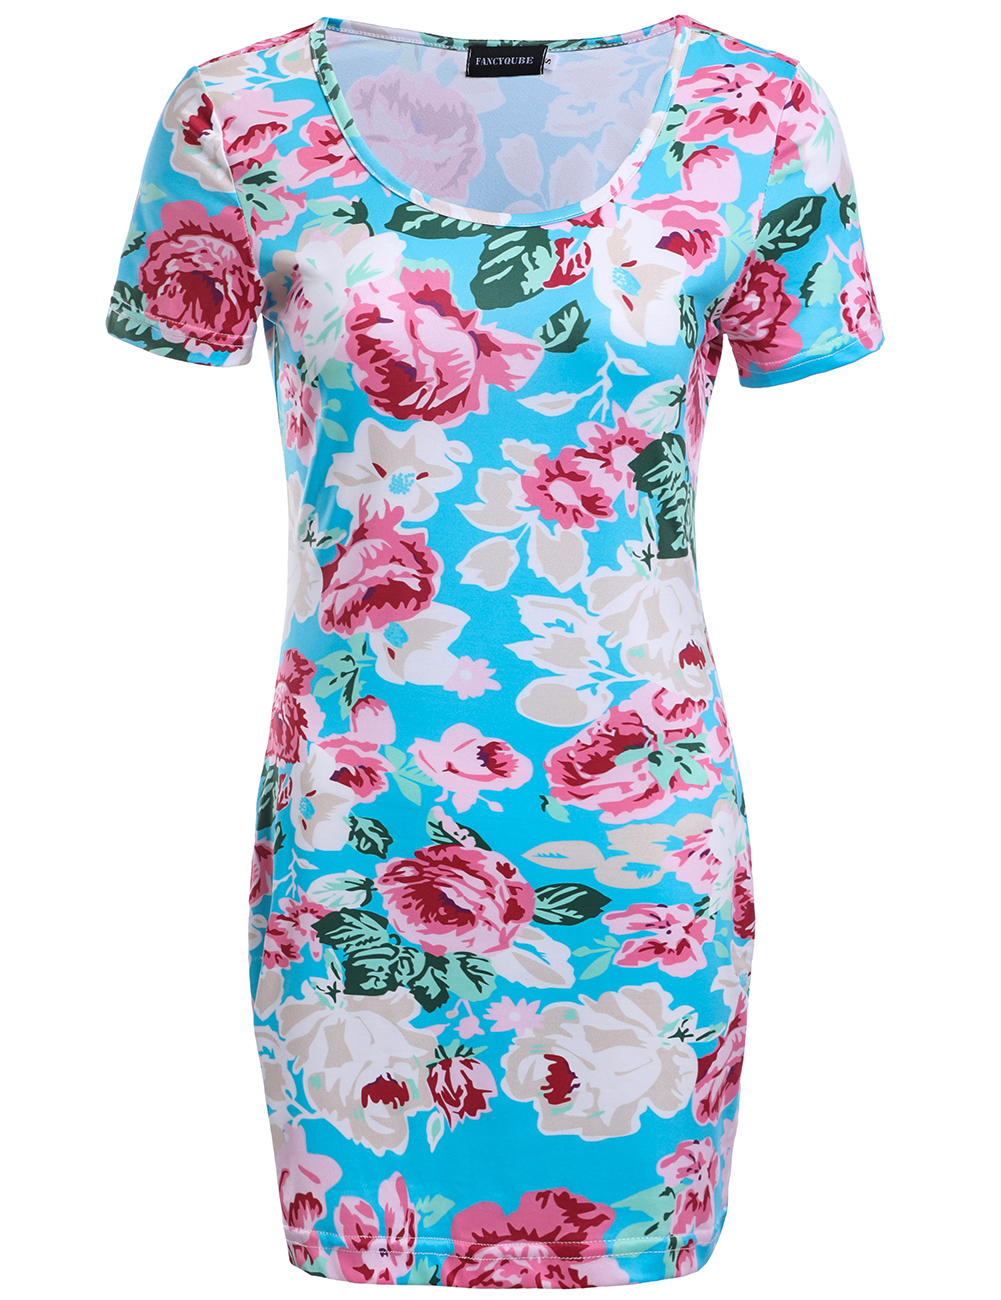 Floral Dress Sexy Women Dress Short Sleeve O-neck Mini Dress Elegant Pencil Dress With Real Pic